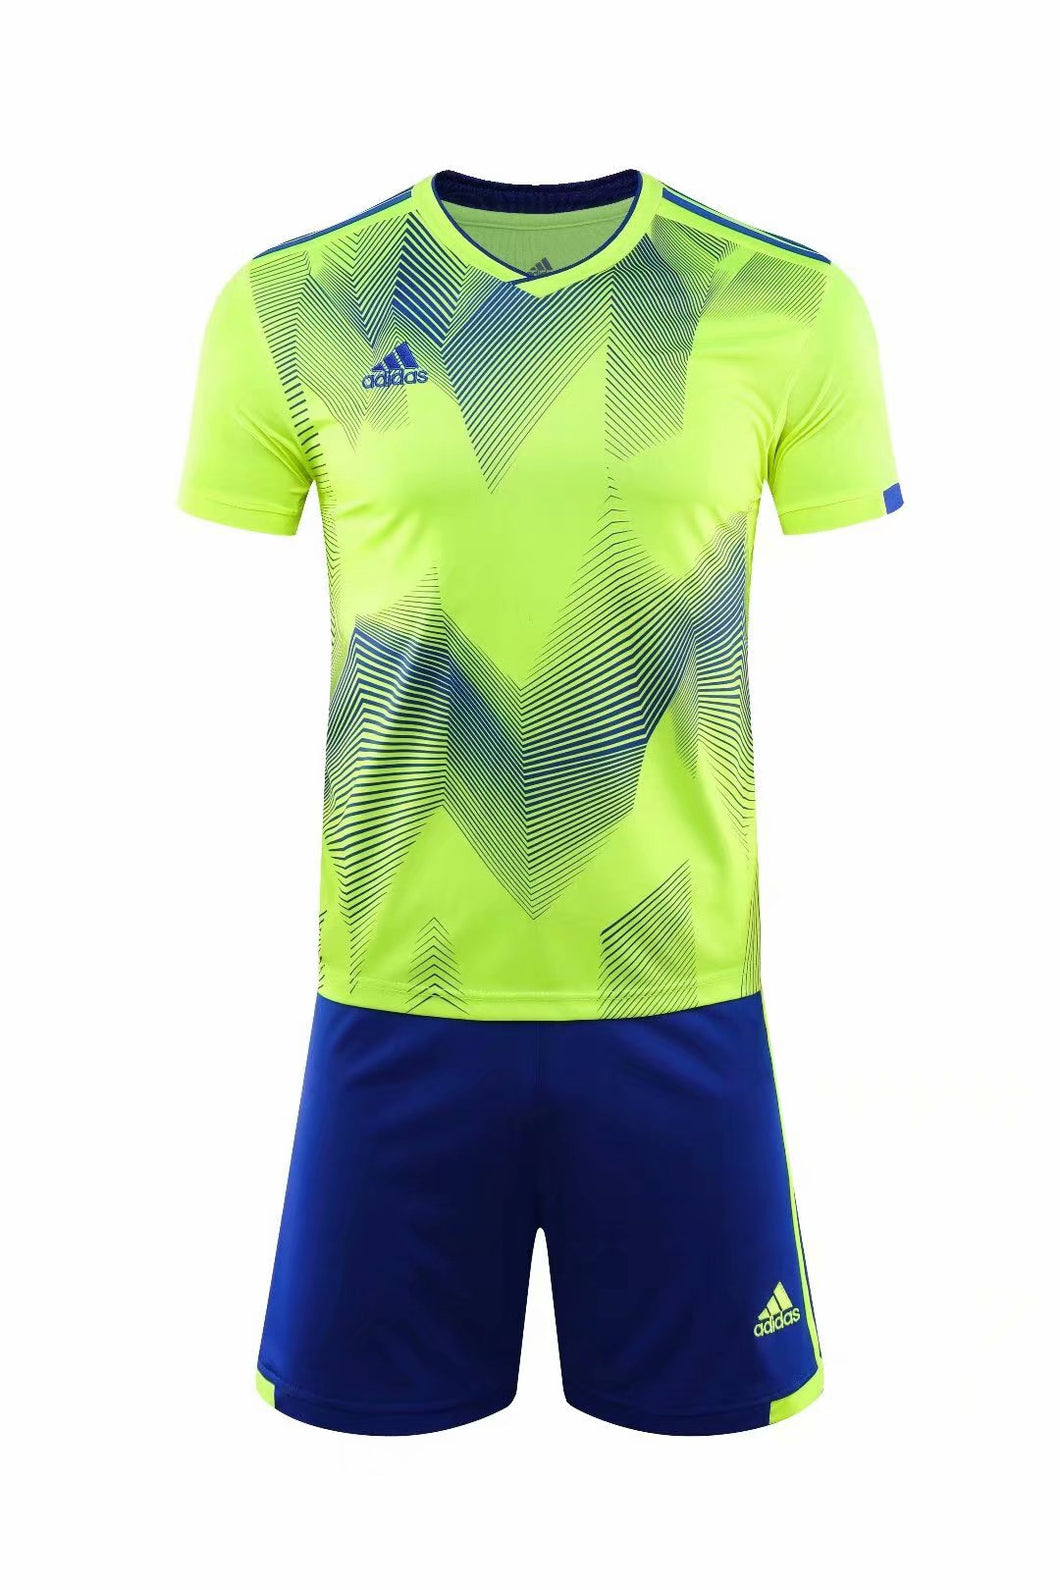 Adidas Full Football Kit Adult Sizes only - 2 tone yellow and blue.